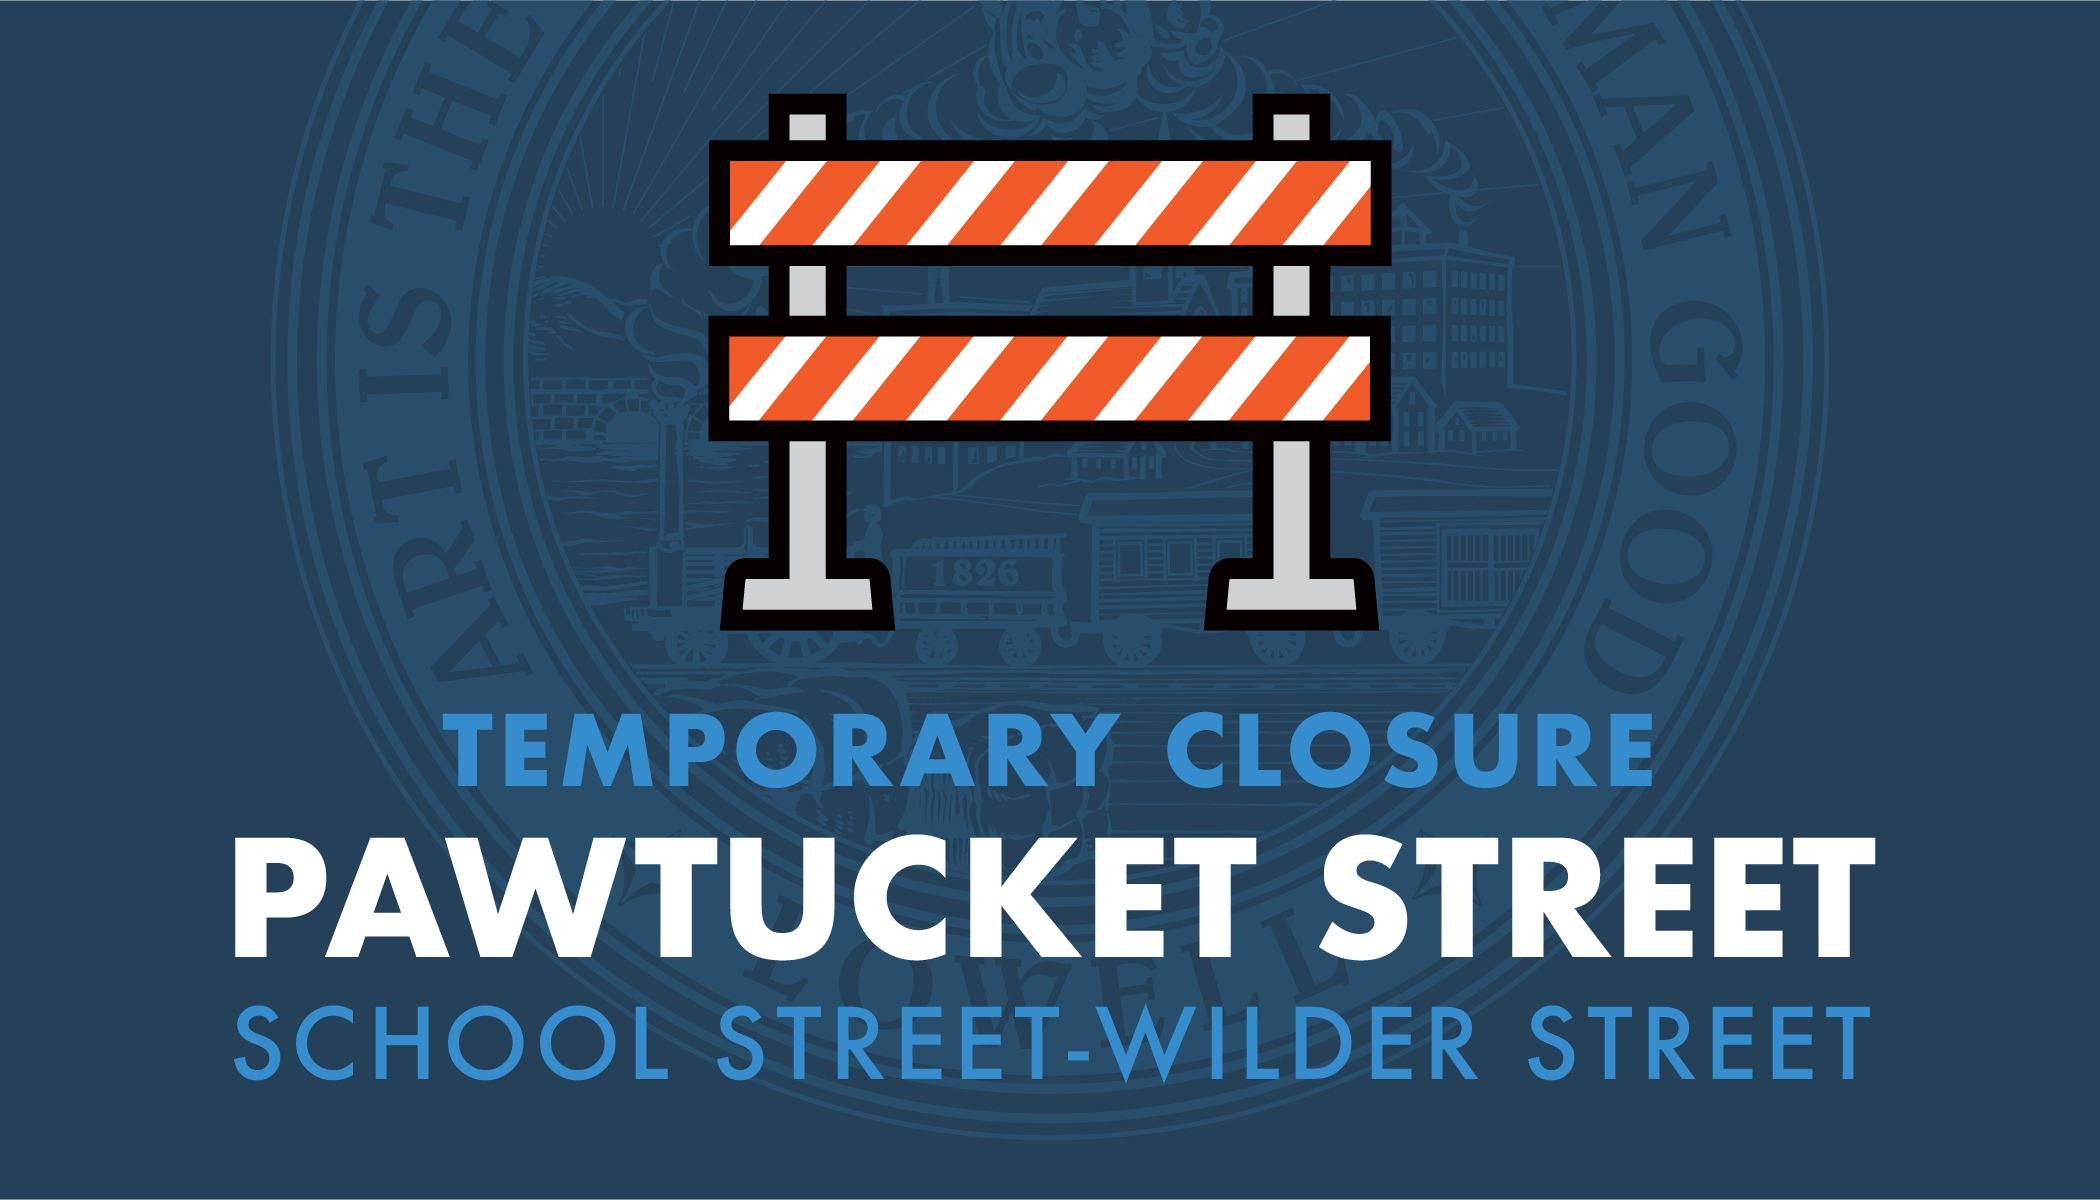 Pawtucket St Closure